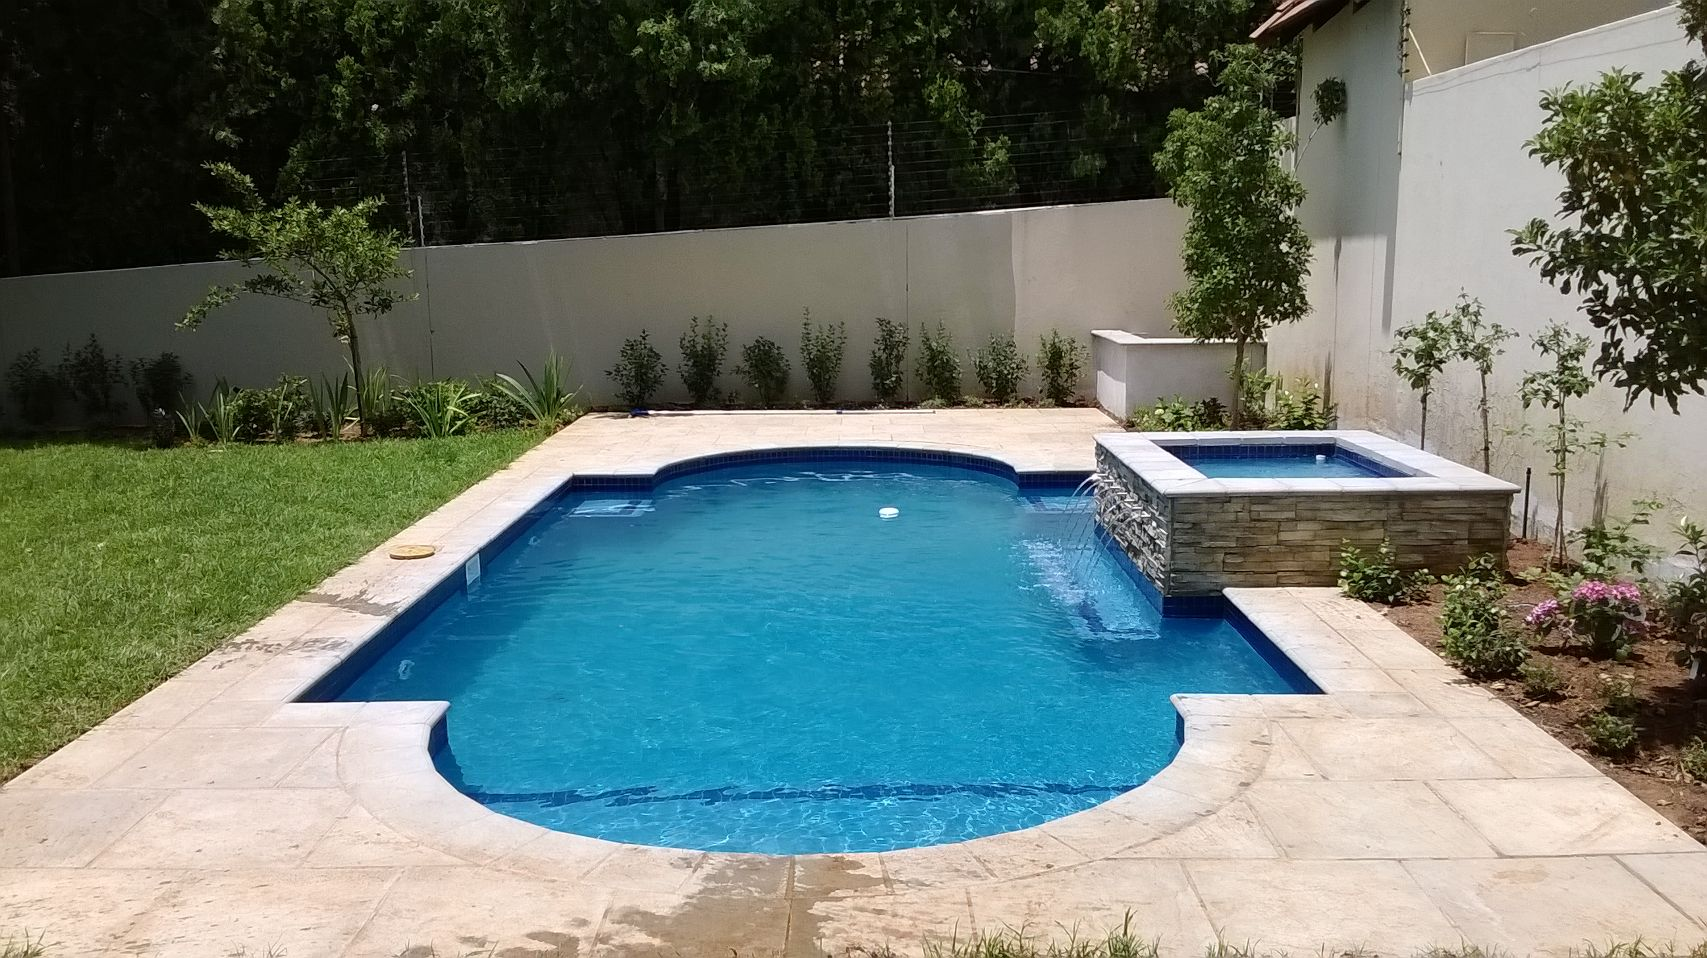 New projects swimming pools johannesburg for Pool design johannesburg